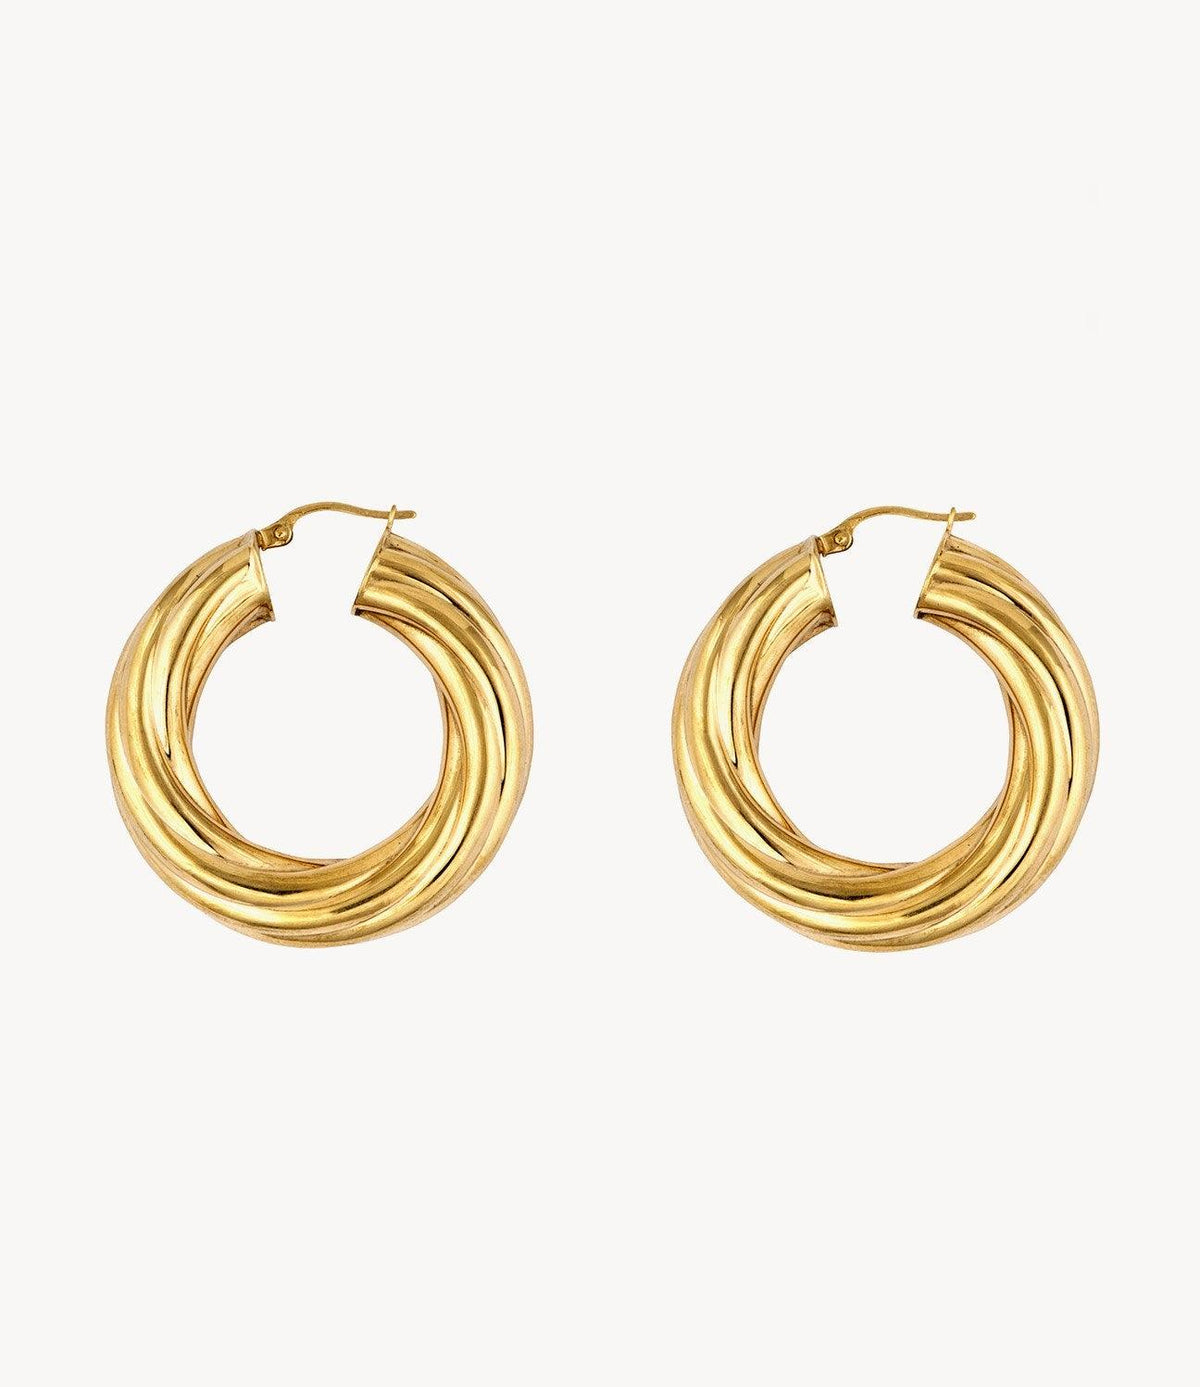 The Small Janet, Gold Retro Hoops